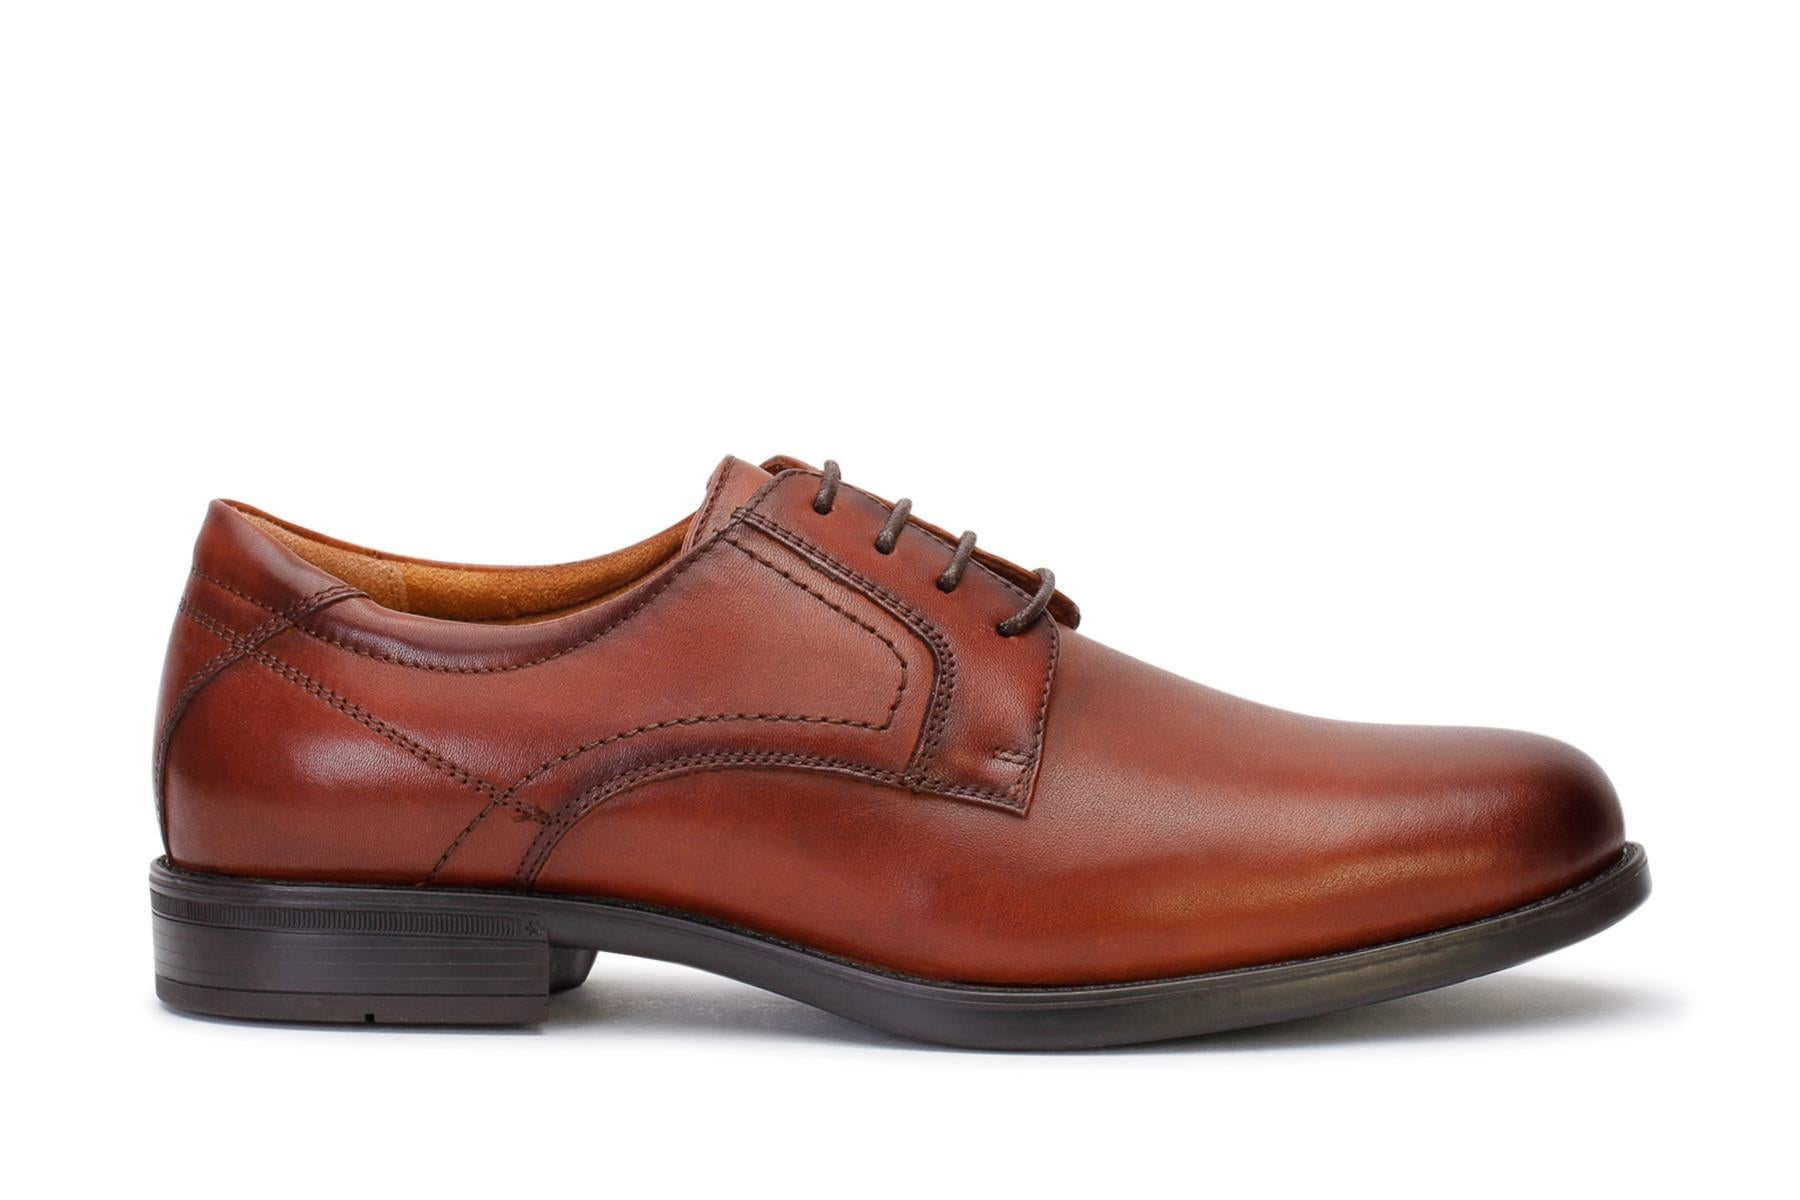 Midtown Florsheim Dress Shoes